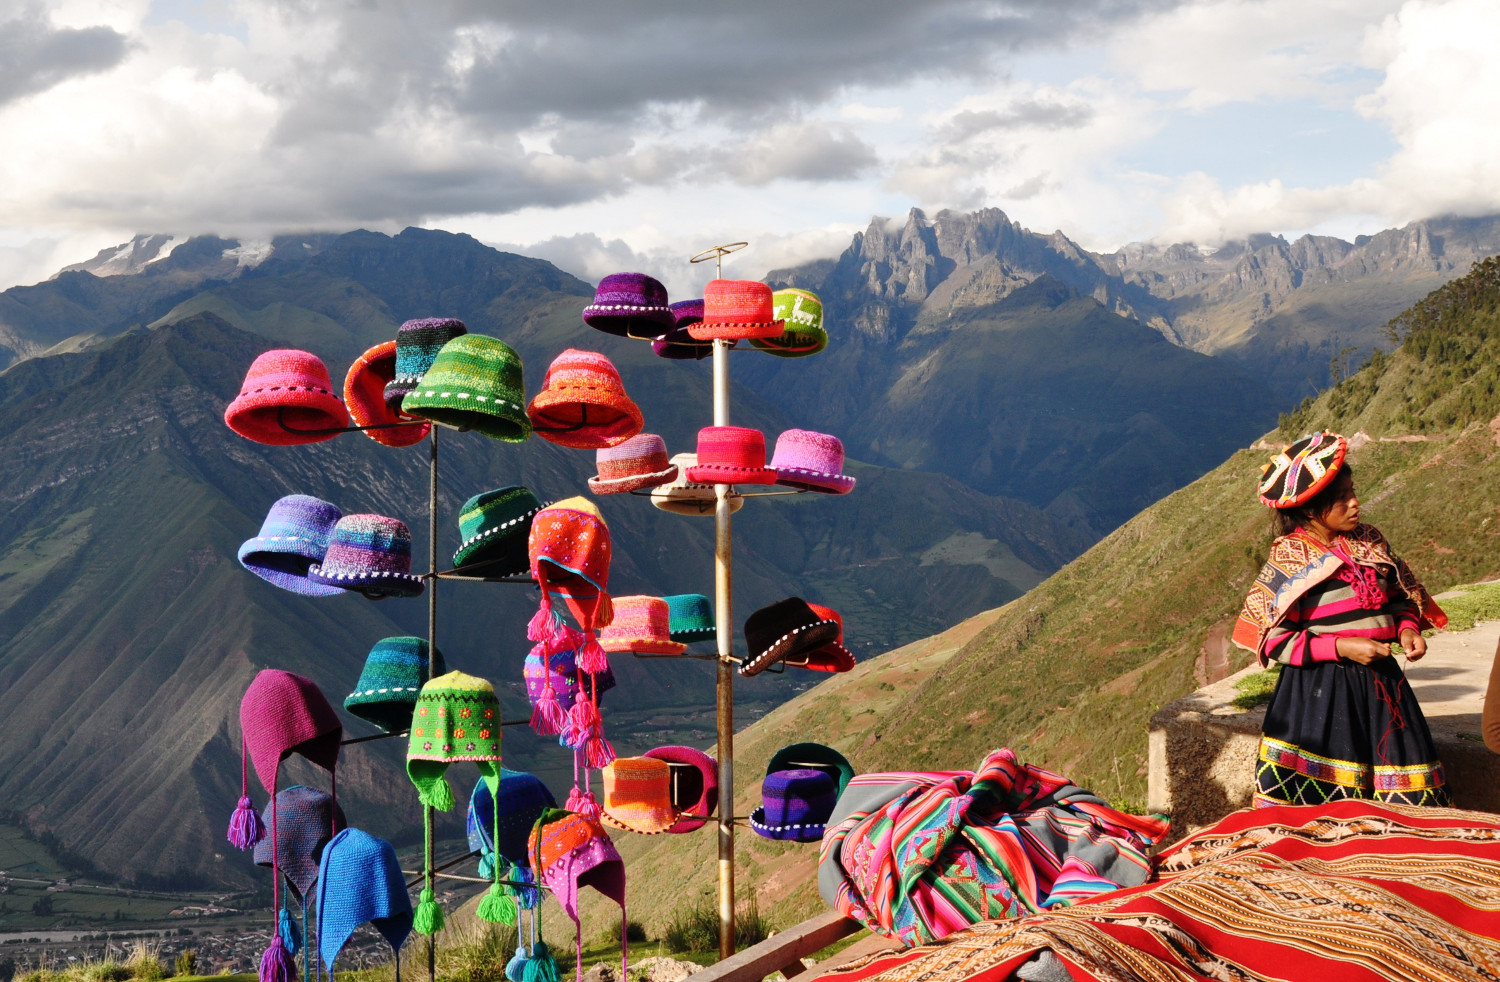 Bunte Hüte: Such dir einen aus! | Colorful hats: pick one out!